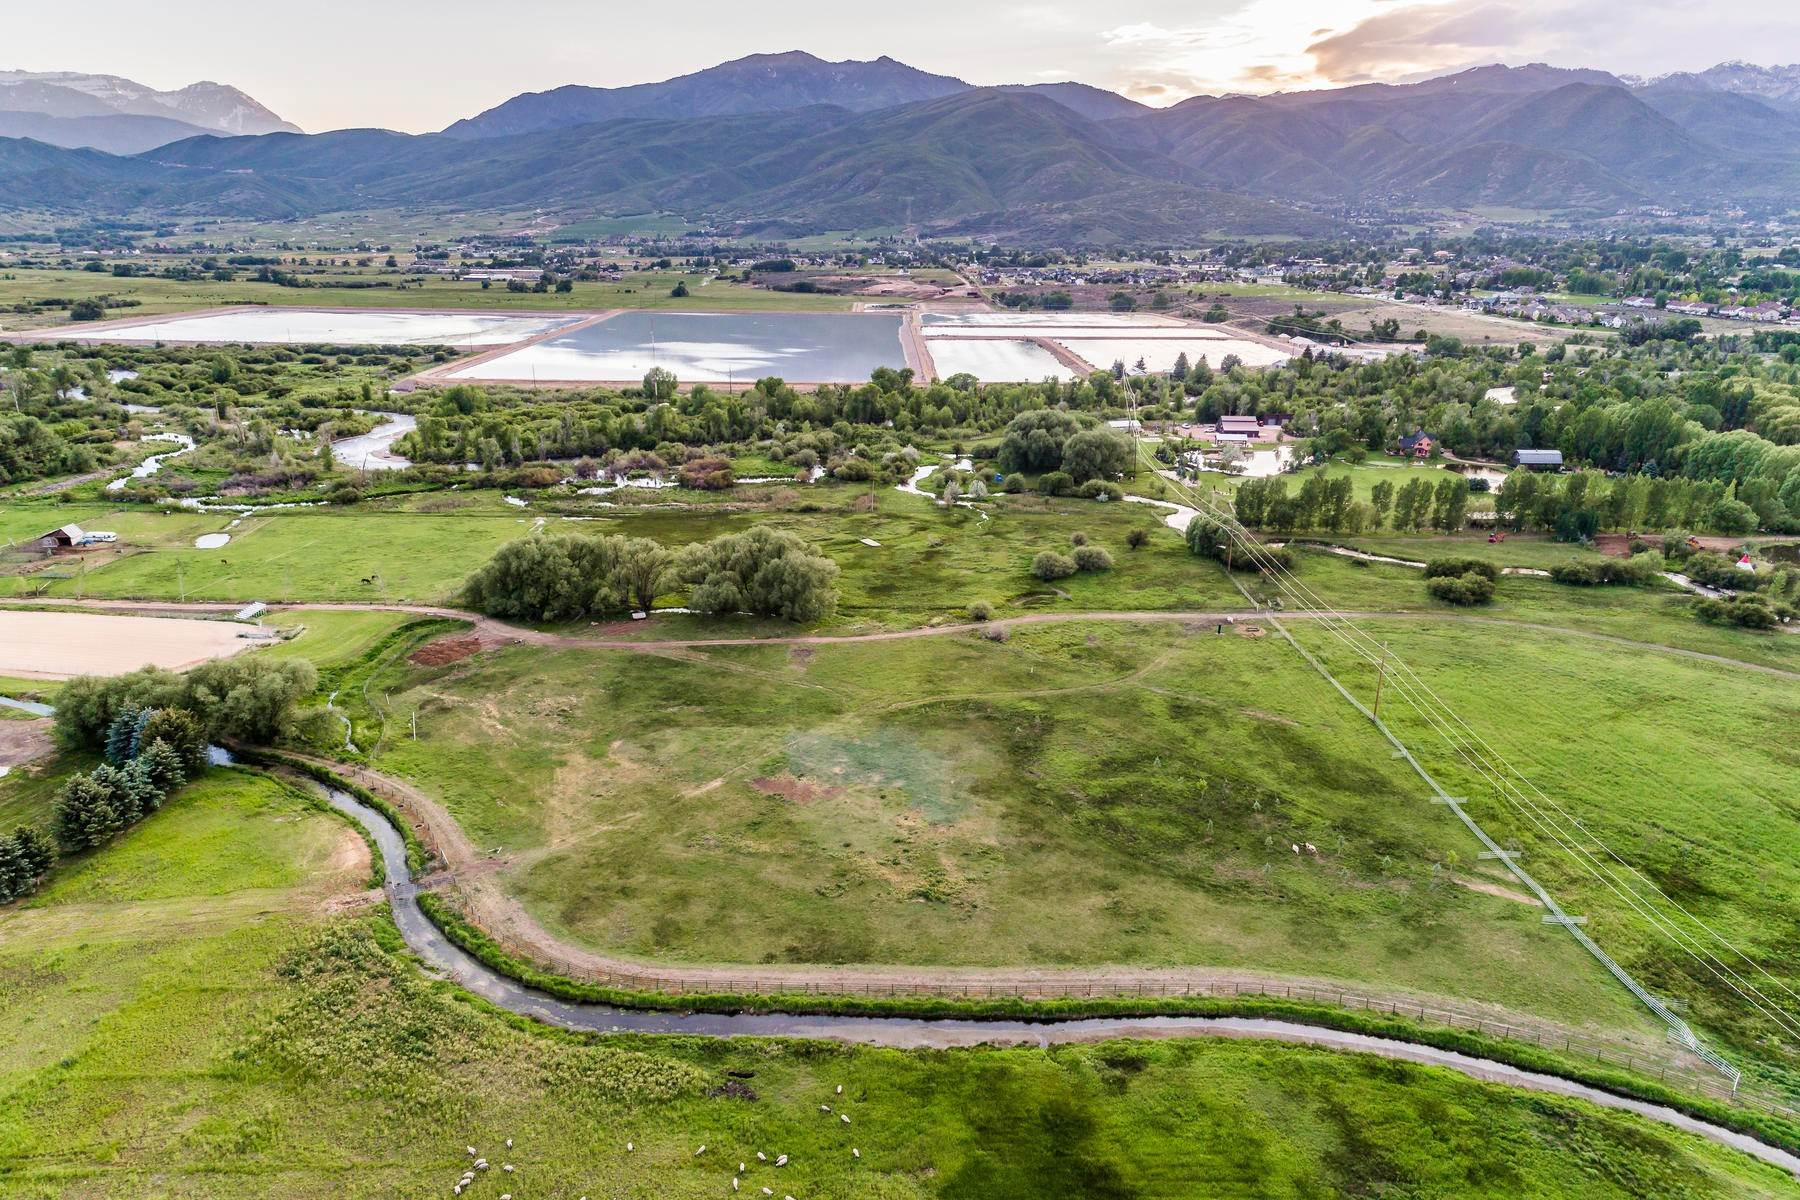 7. Land for Sale at Beautiful 7.68 Acre Lot Near The Provo River 1500 W Midway Ln, #9 Heber, Utah 84032 United States